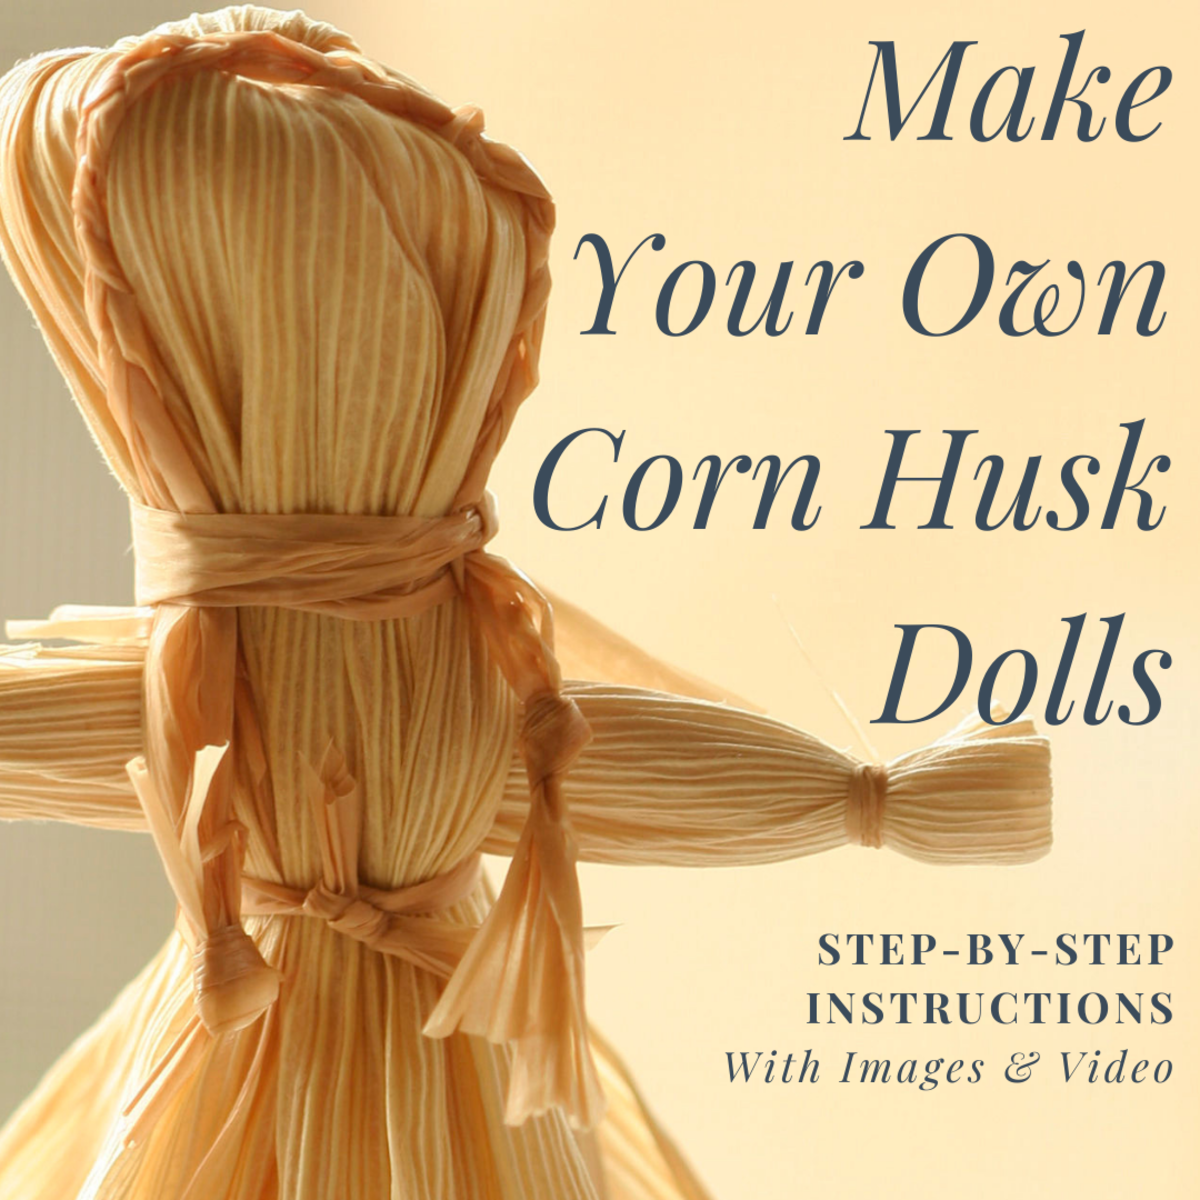 How to Make Corn Husk Dolls (Step-by-Step Instructions)